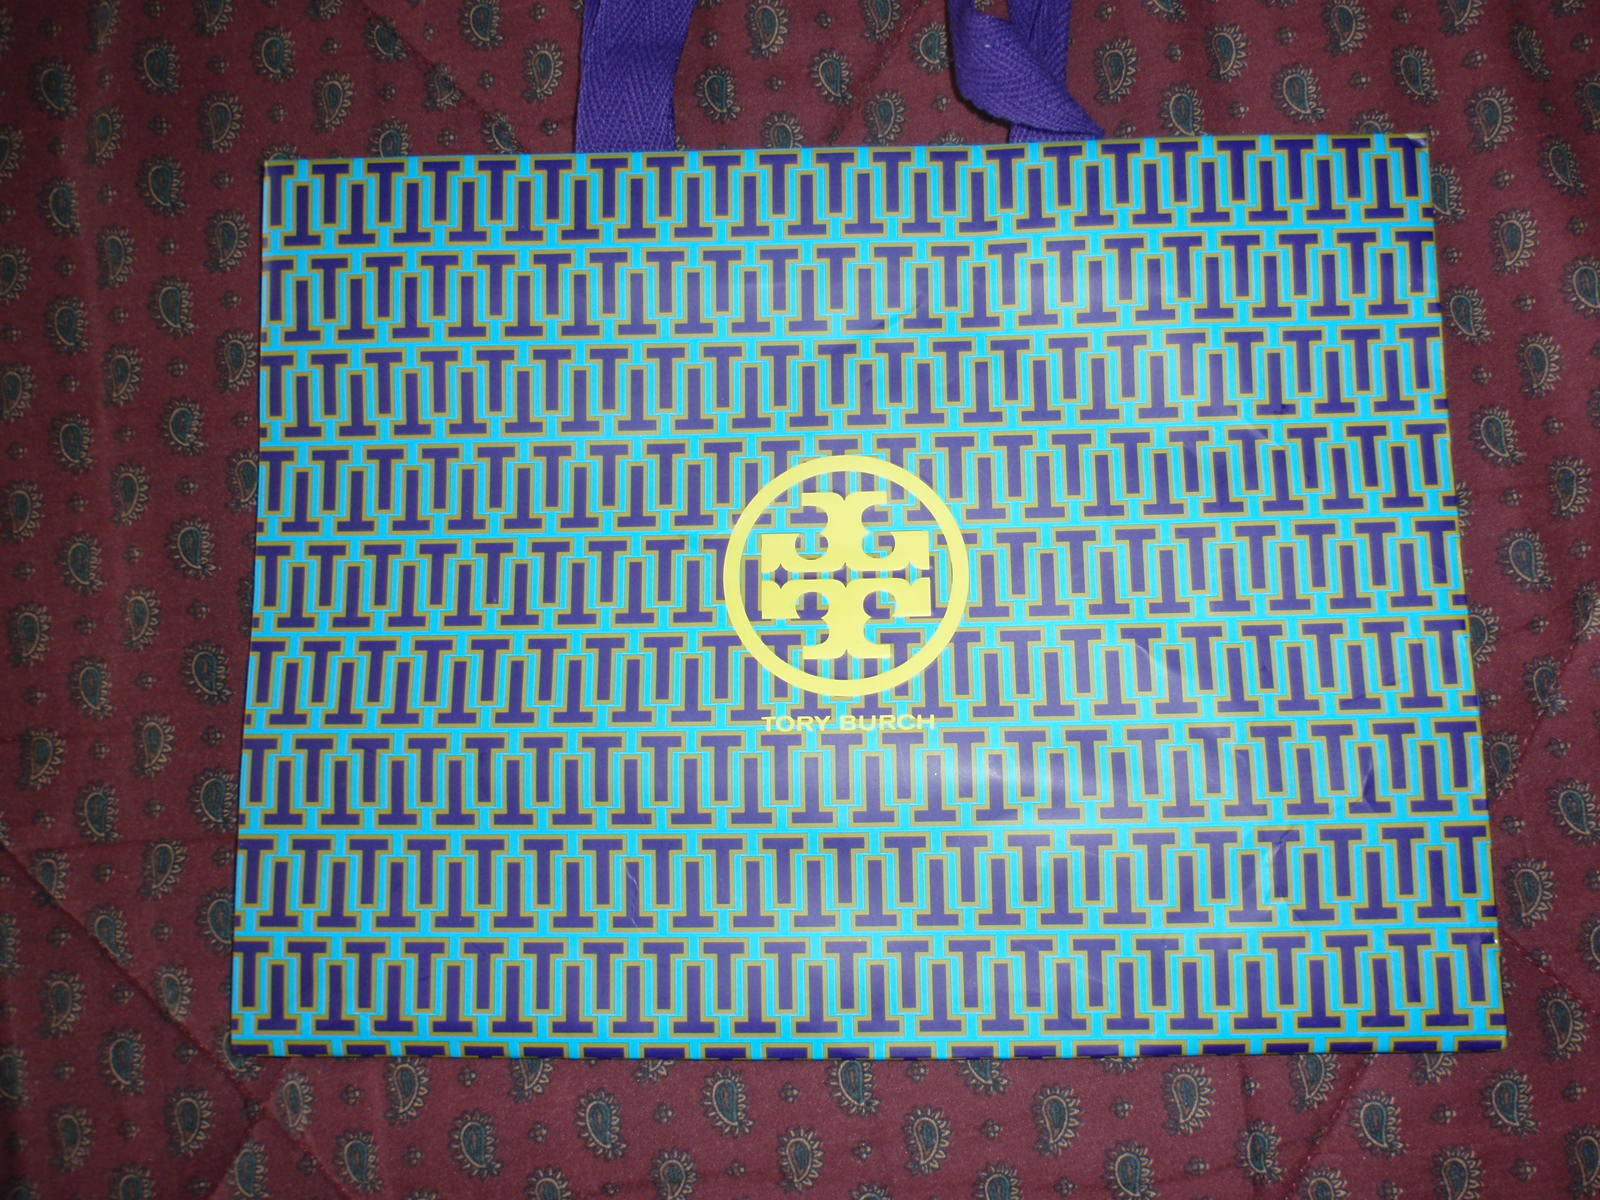 645c81eabc6a TORY BURCH Gift Shopping Bag Sack - Size 12 and 50 similar items